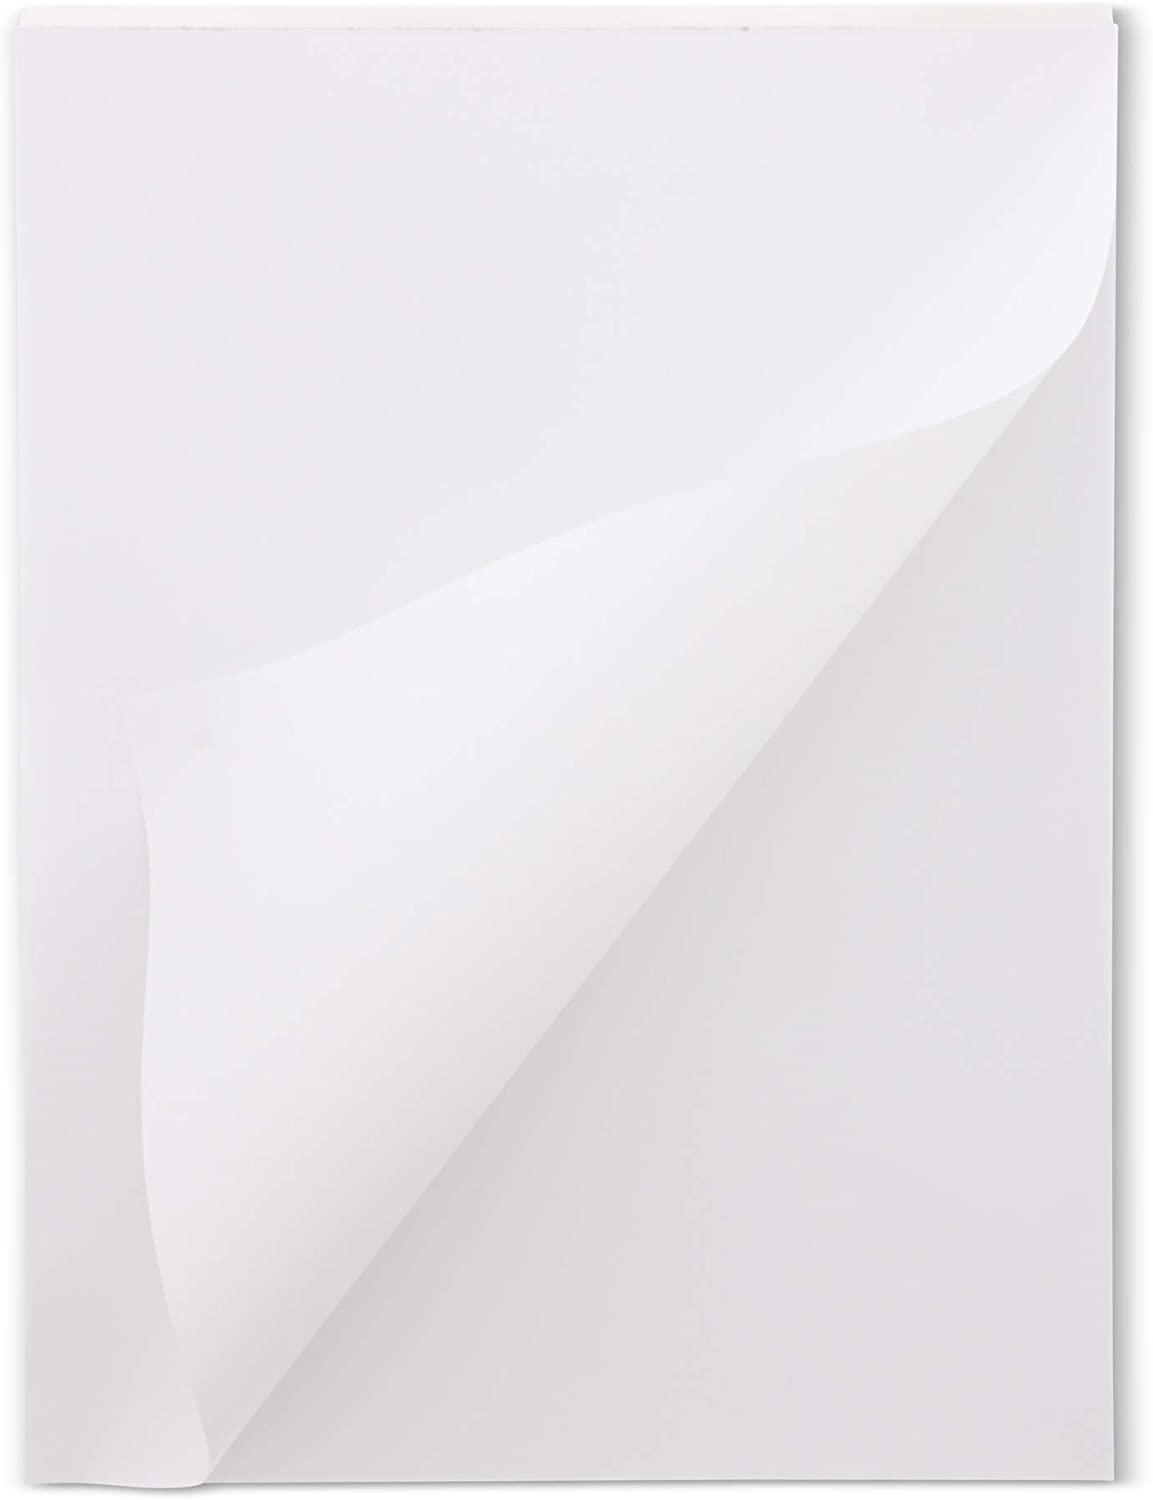 9 x 12 In, 50 Sheets Semi-Transparent White Drawing Paper Pad for Markers